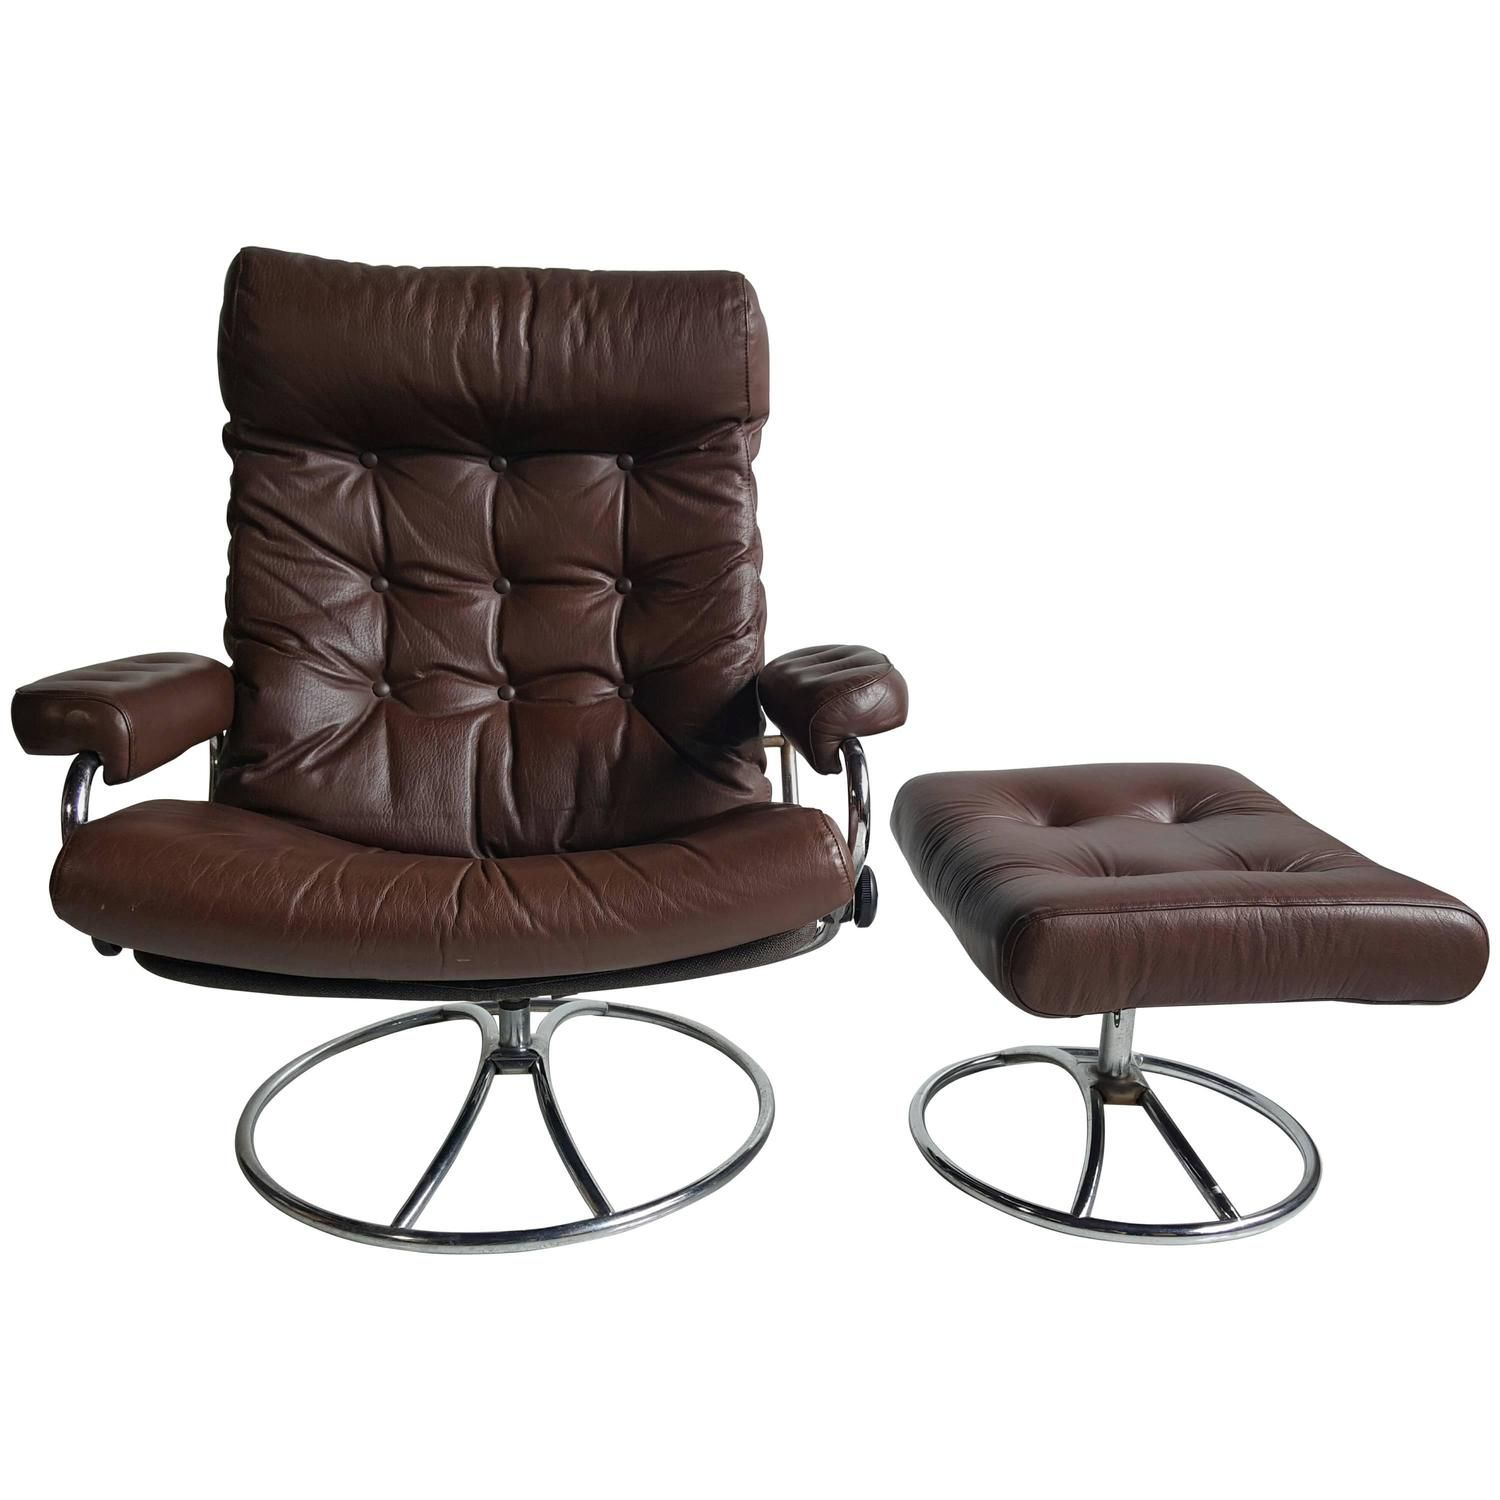 Charming Brown Leather Ekornes Stressless Lounge With Ottoman, 1960